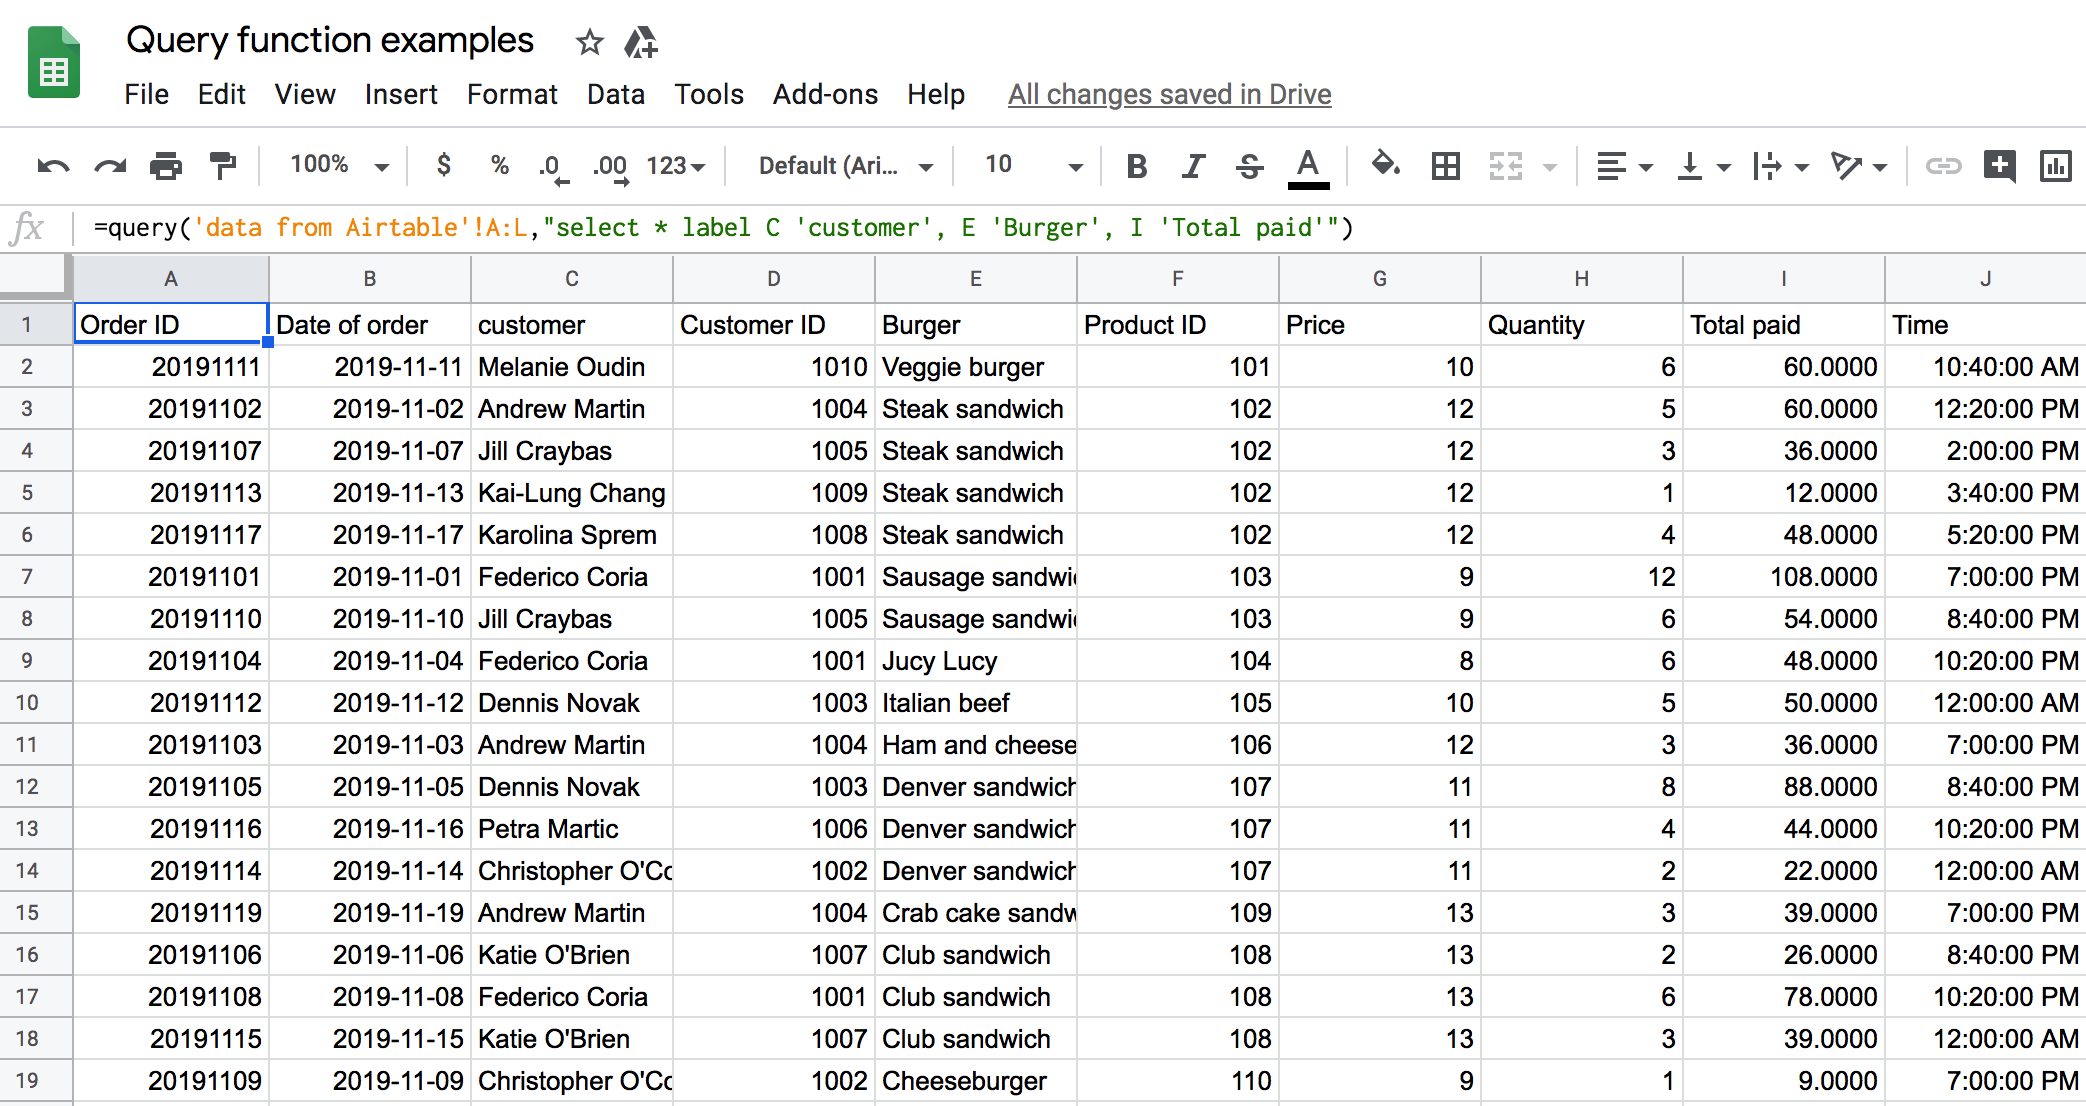 Usage of Google Sheets Query LABEL